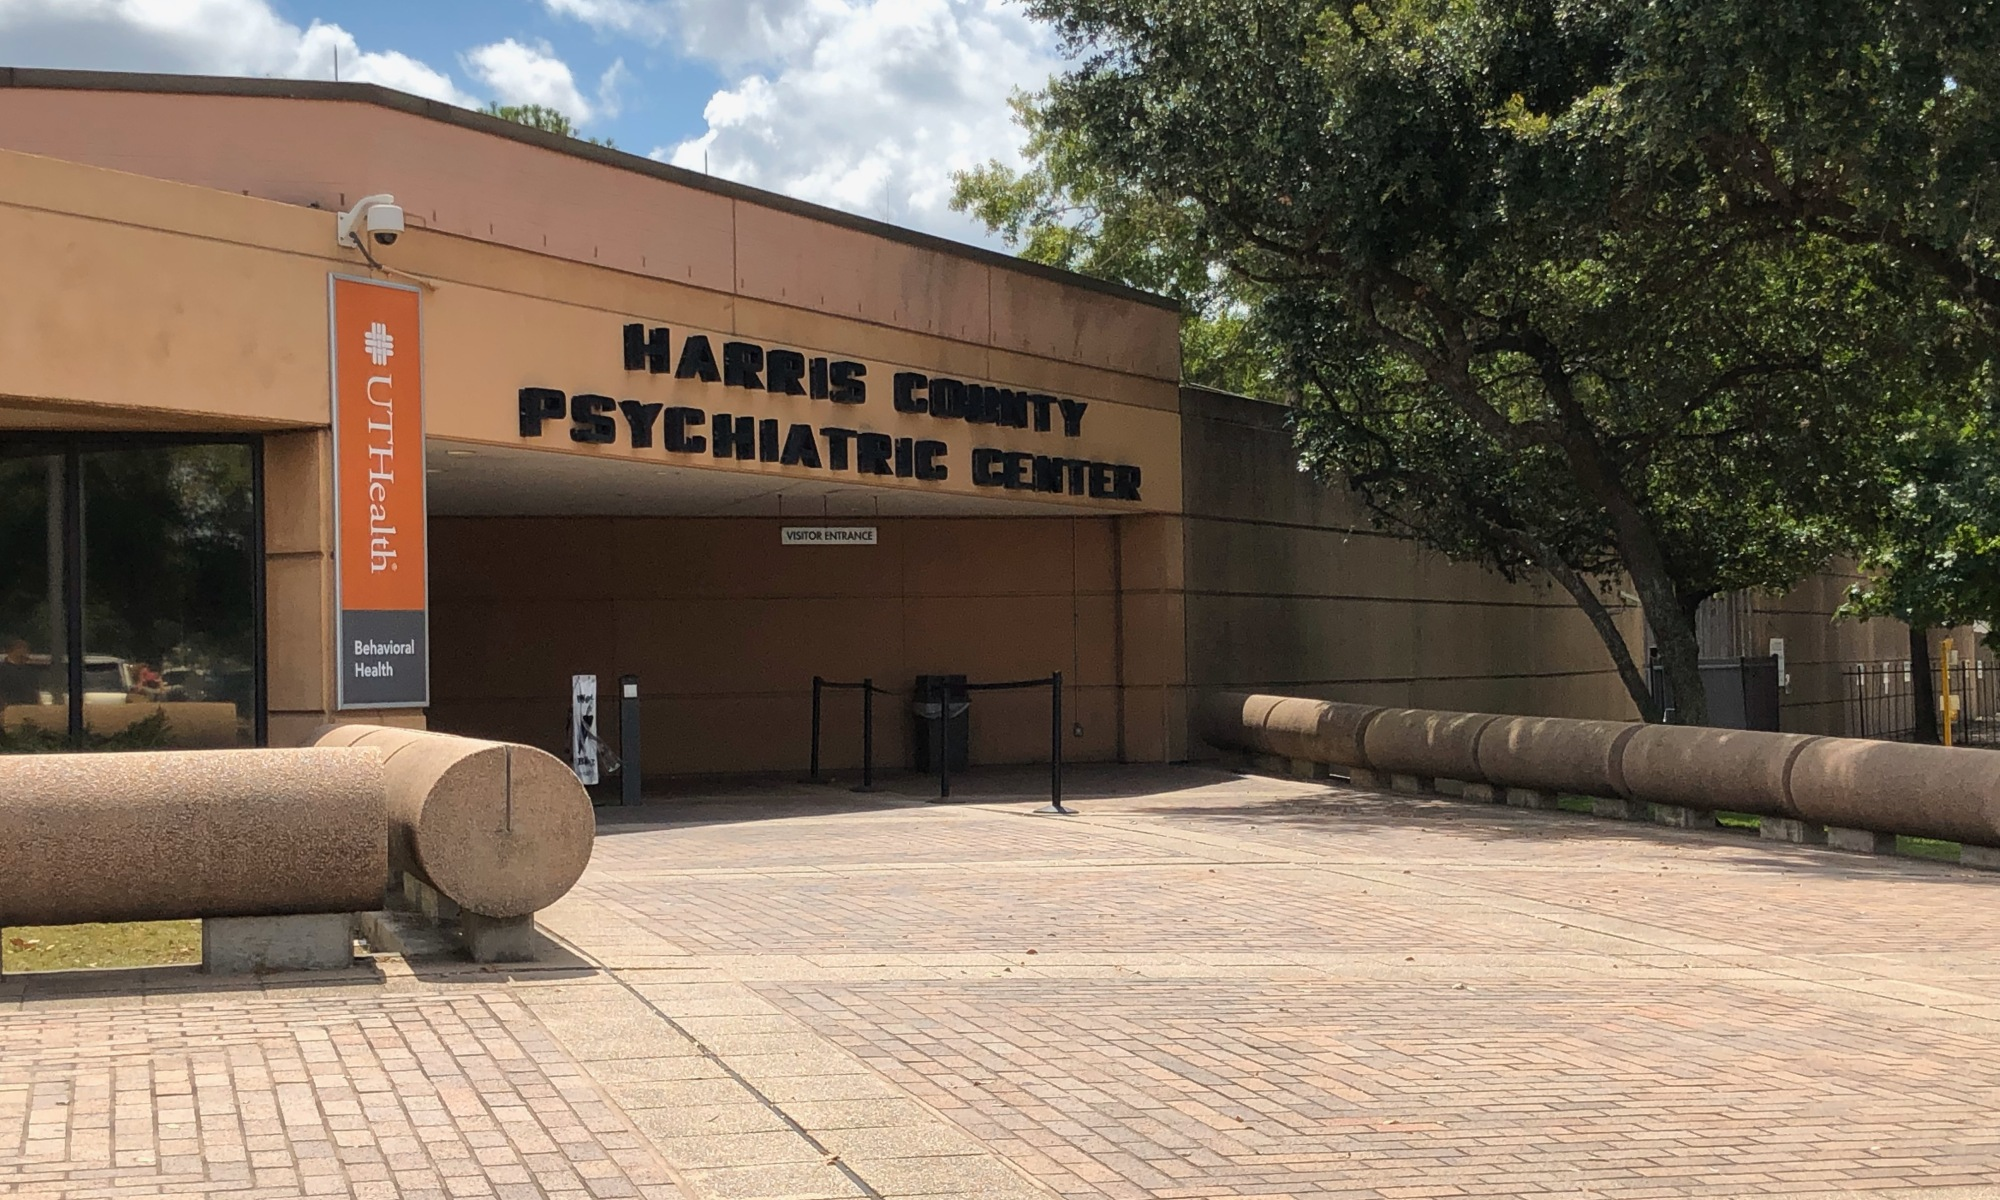 Harris County Psychiatric Center, Houston